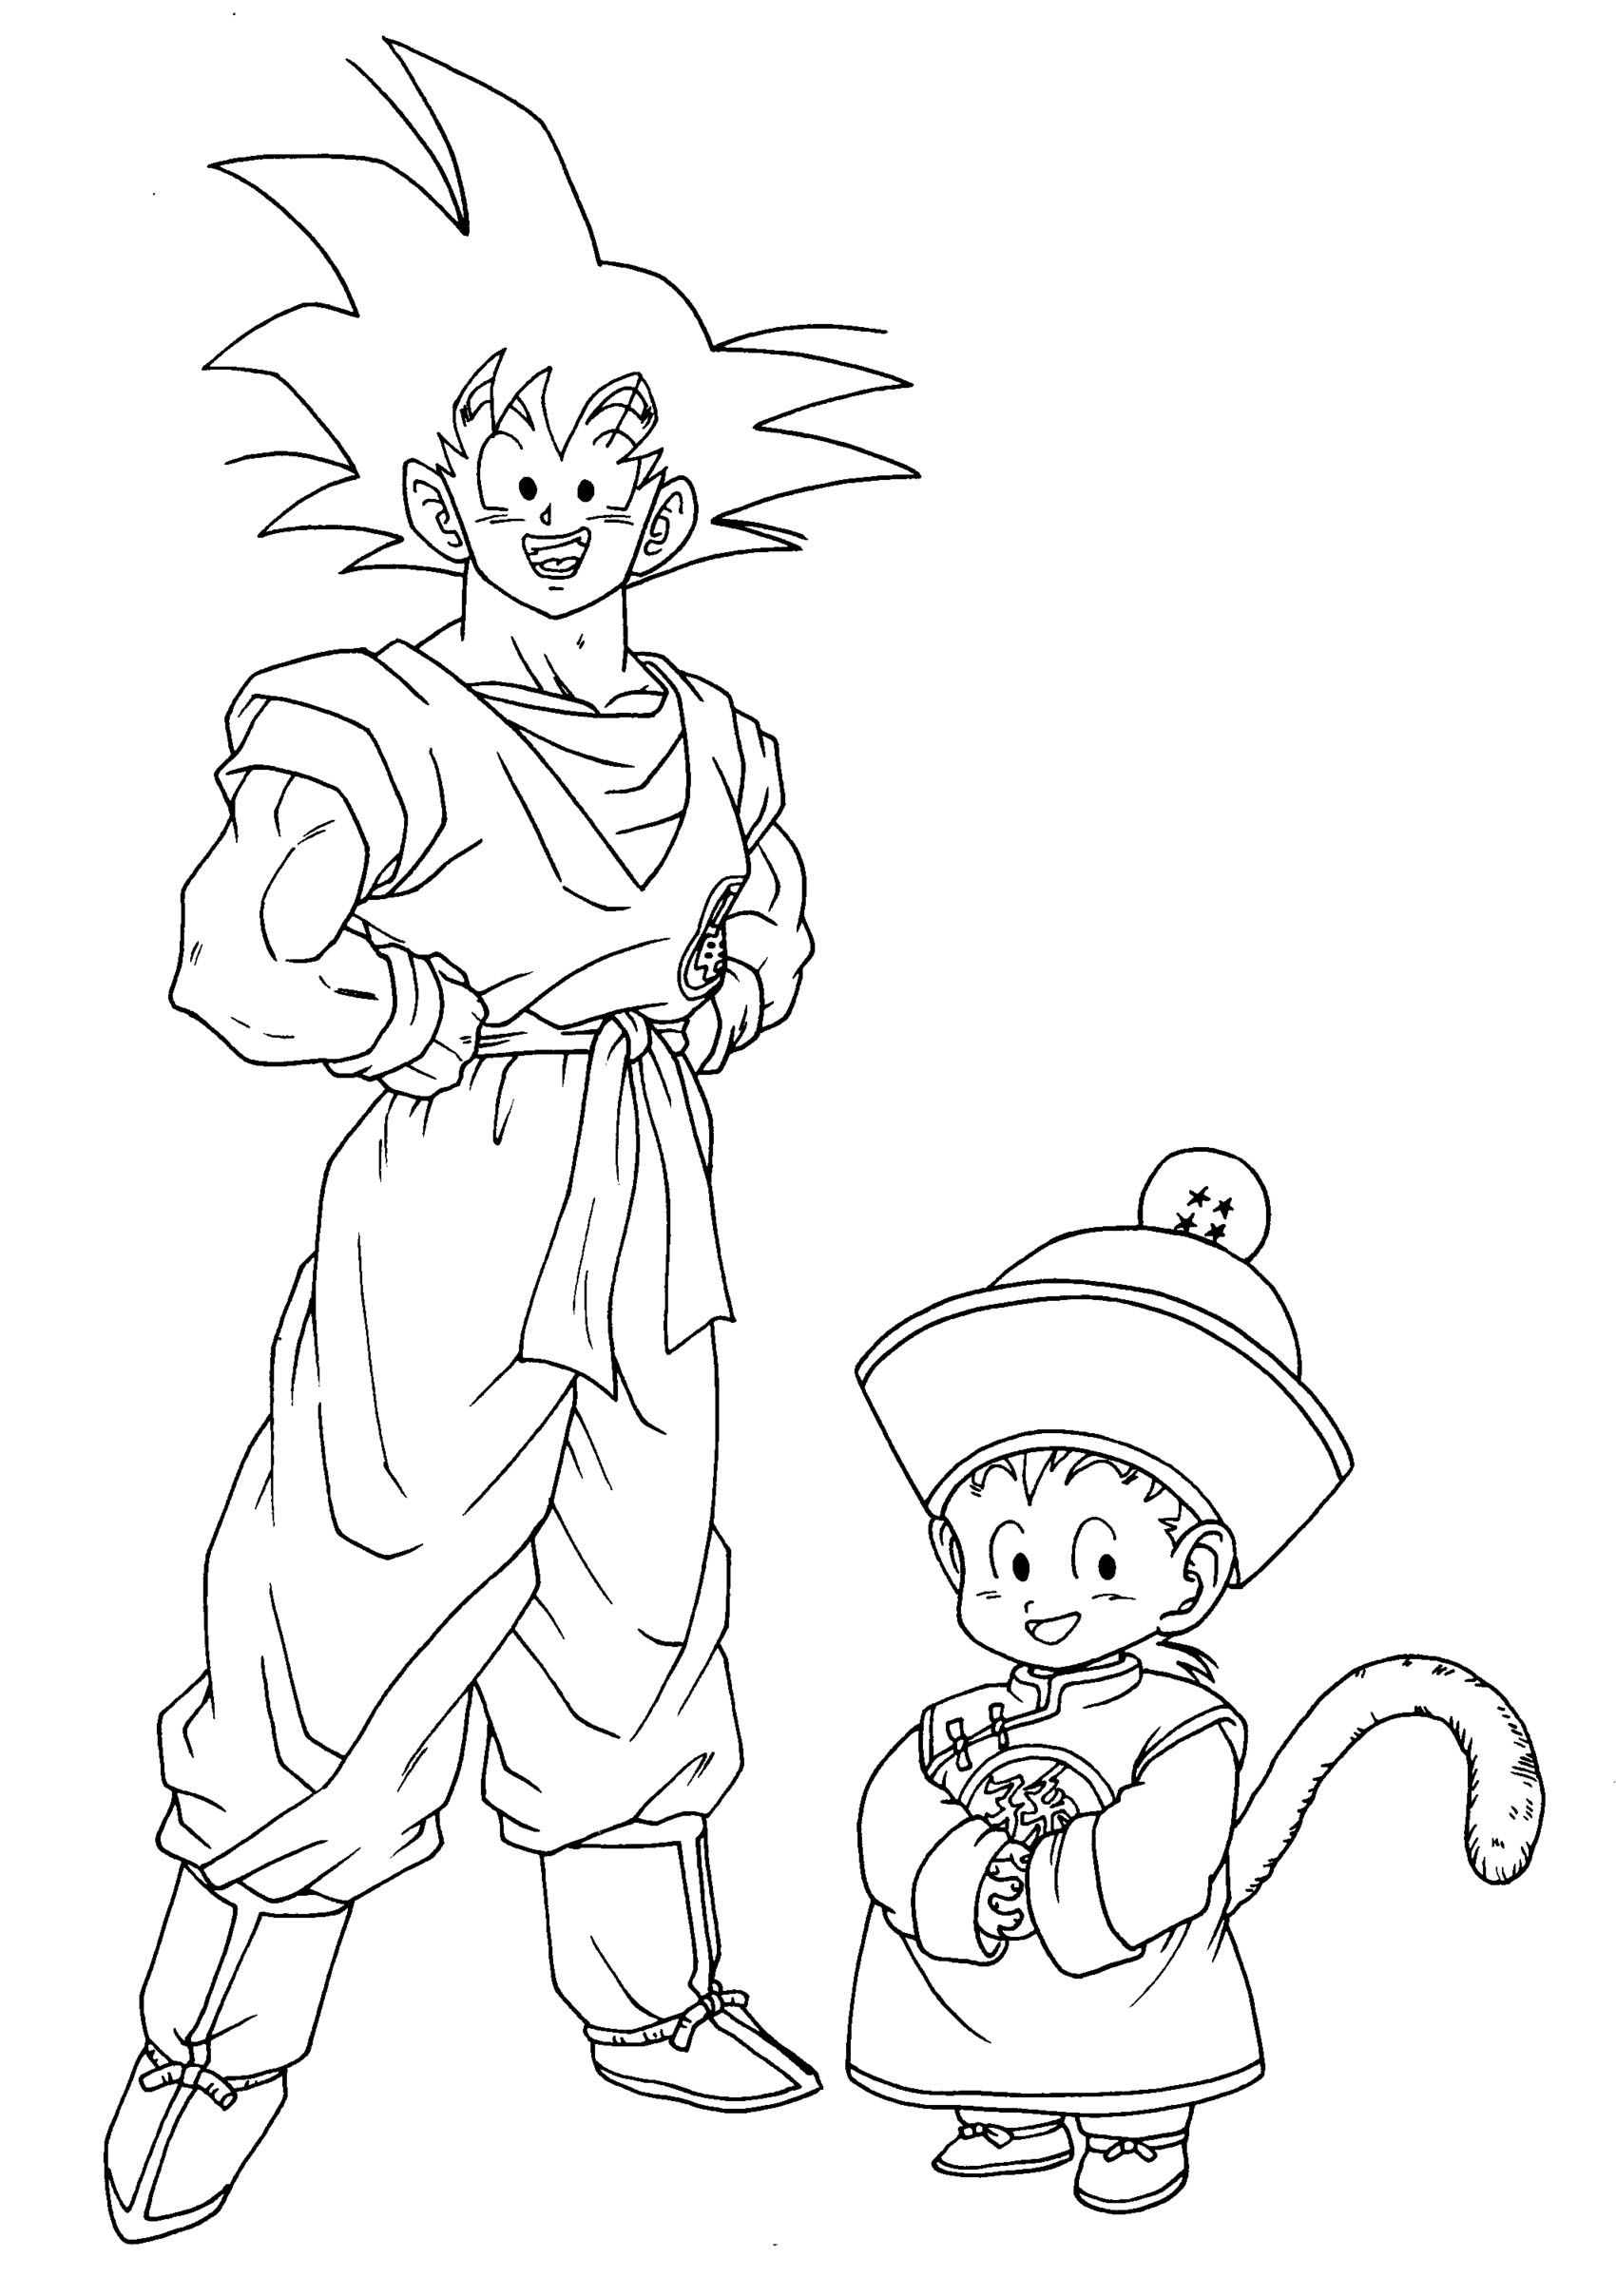 Coloriages dragon ball z 11 coloriage dragon ball z coloriages pour enfants - Coloriage dragon ball z sangoku ...